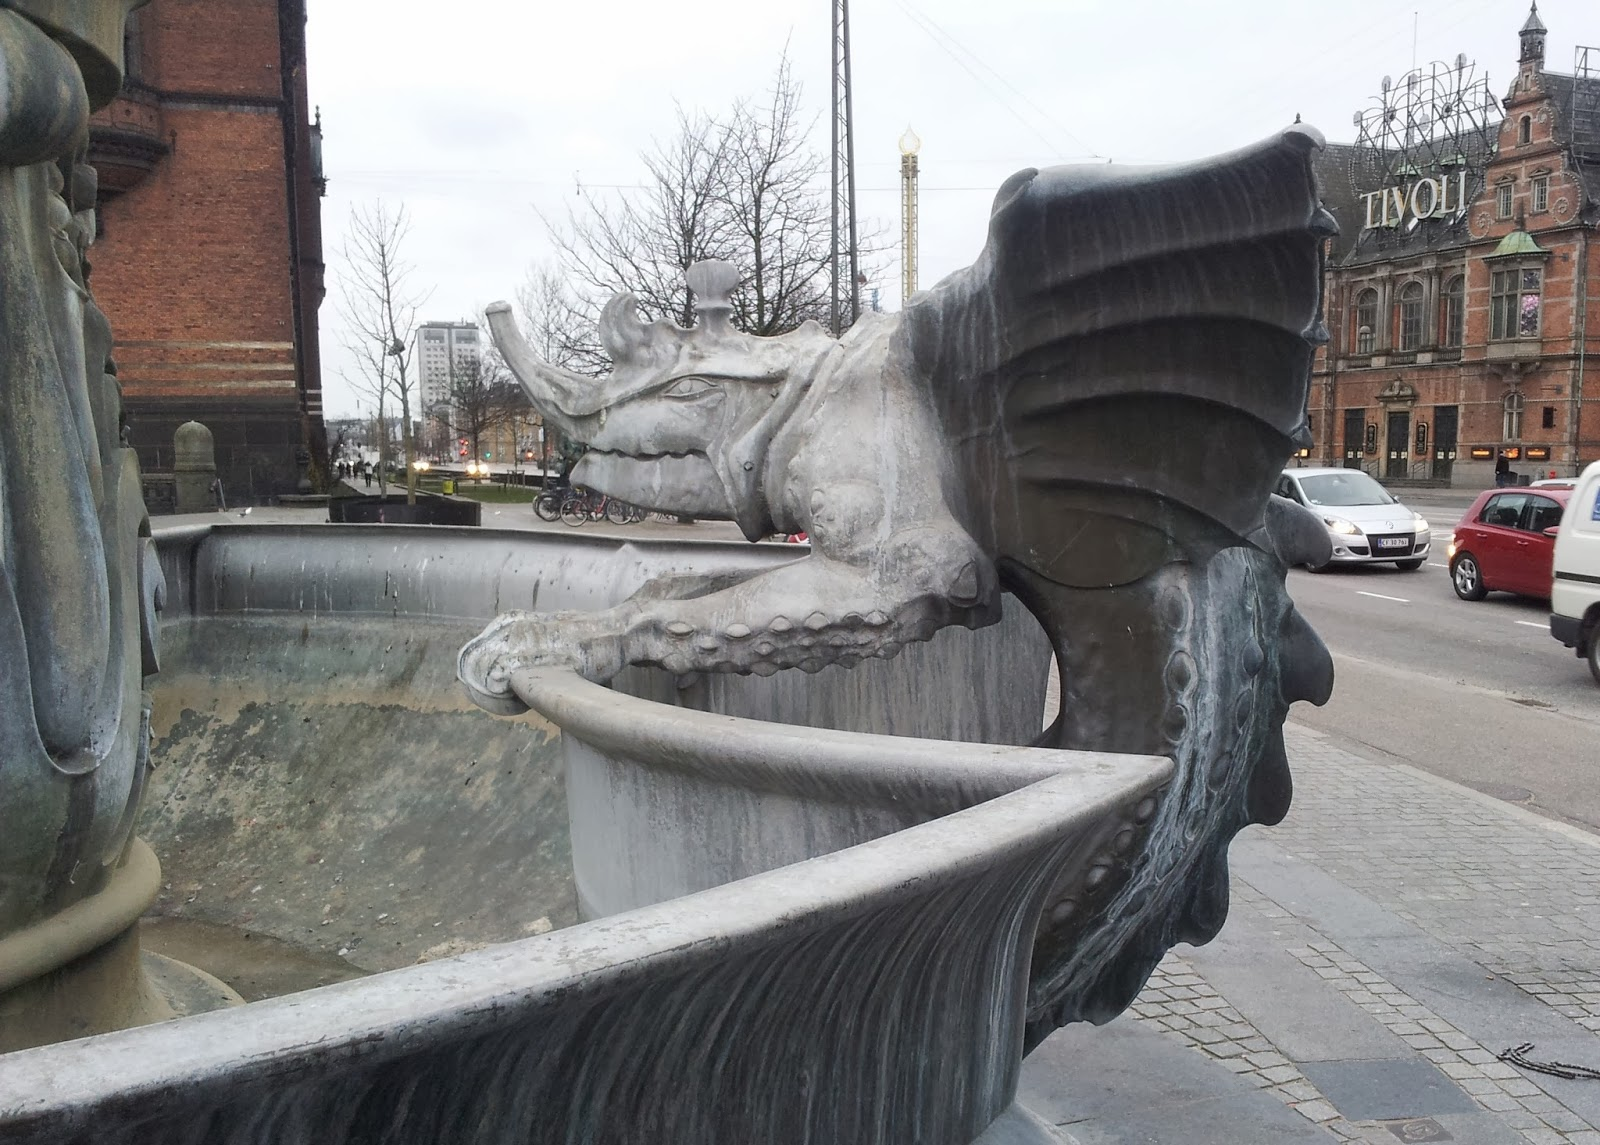 Gargoyle sculpture on dry fountain in Copenhagen